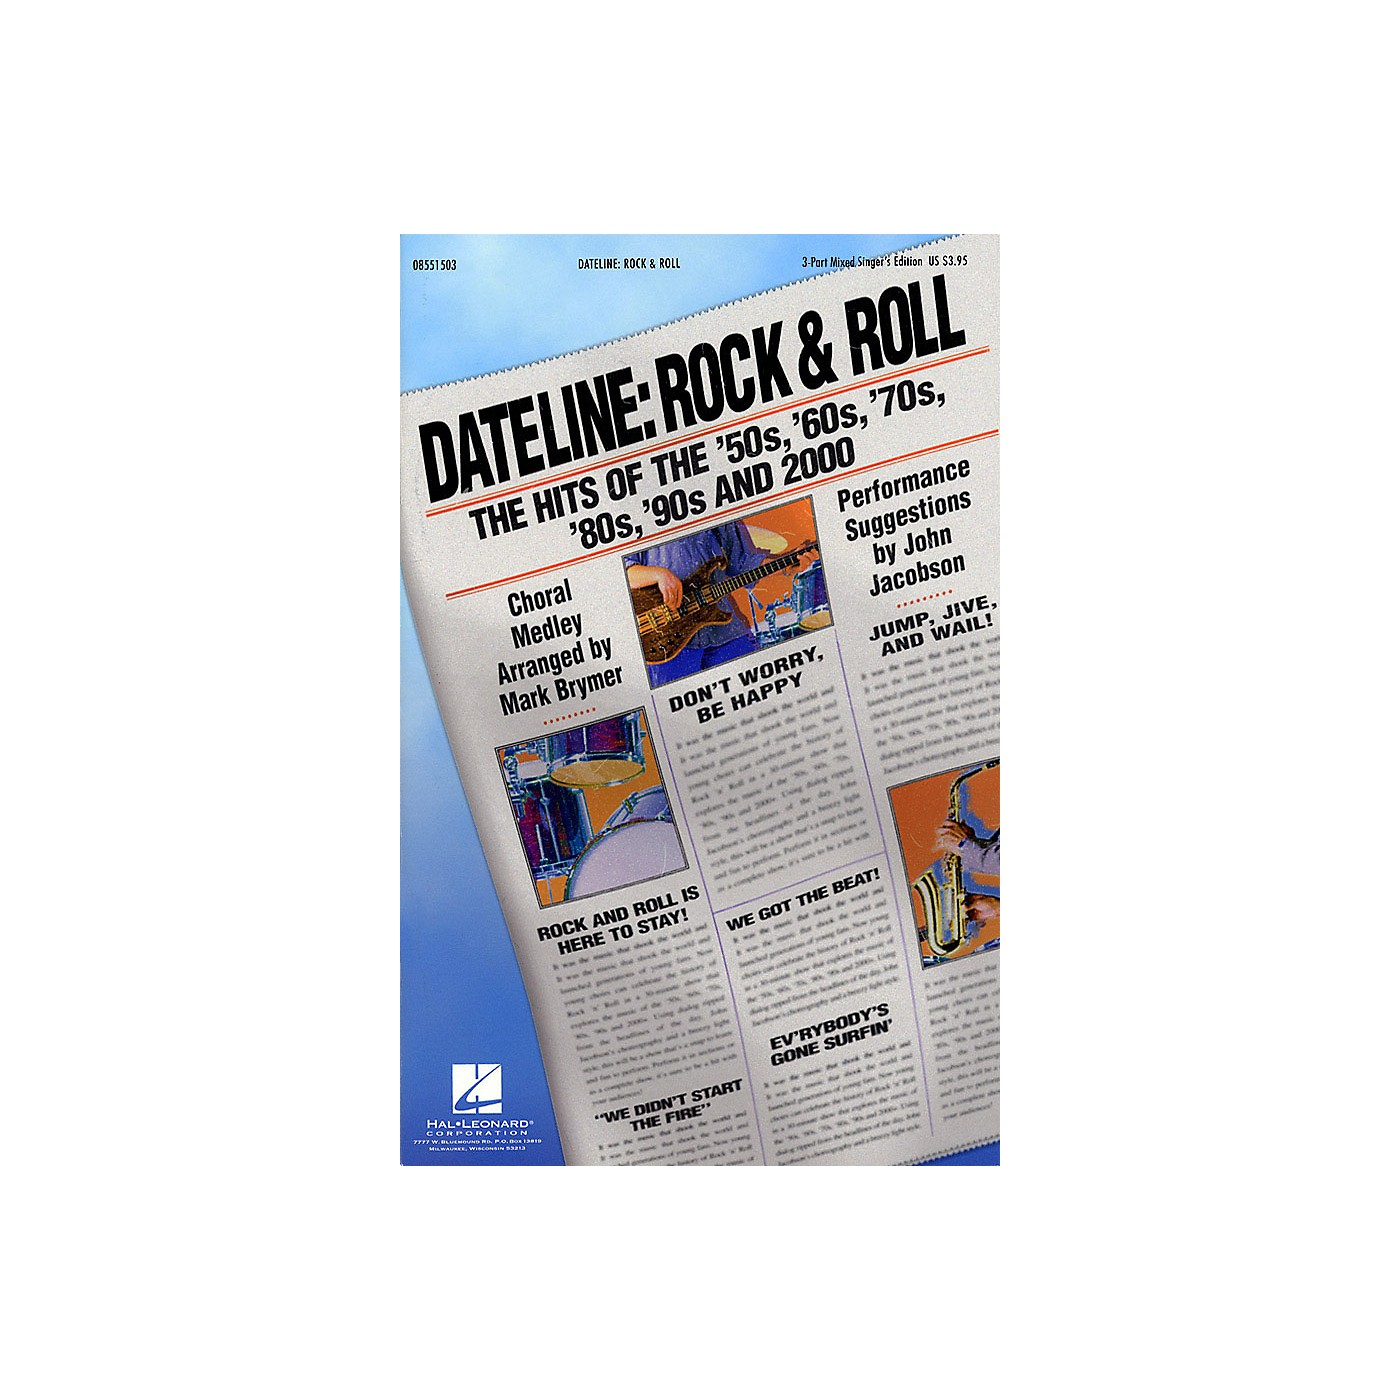 Hal Leonard Dateline: Rock & Roll - The Hits of the '50s, '60s, '70s, '80s, '90s and 2000 3 Part Singer by Mark Brymer thumbnail